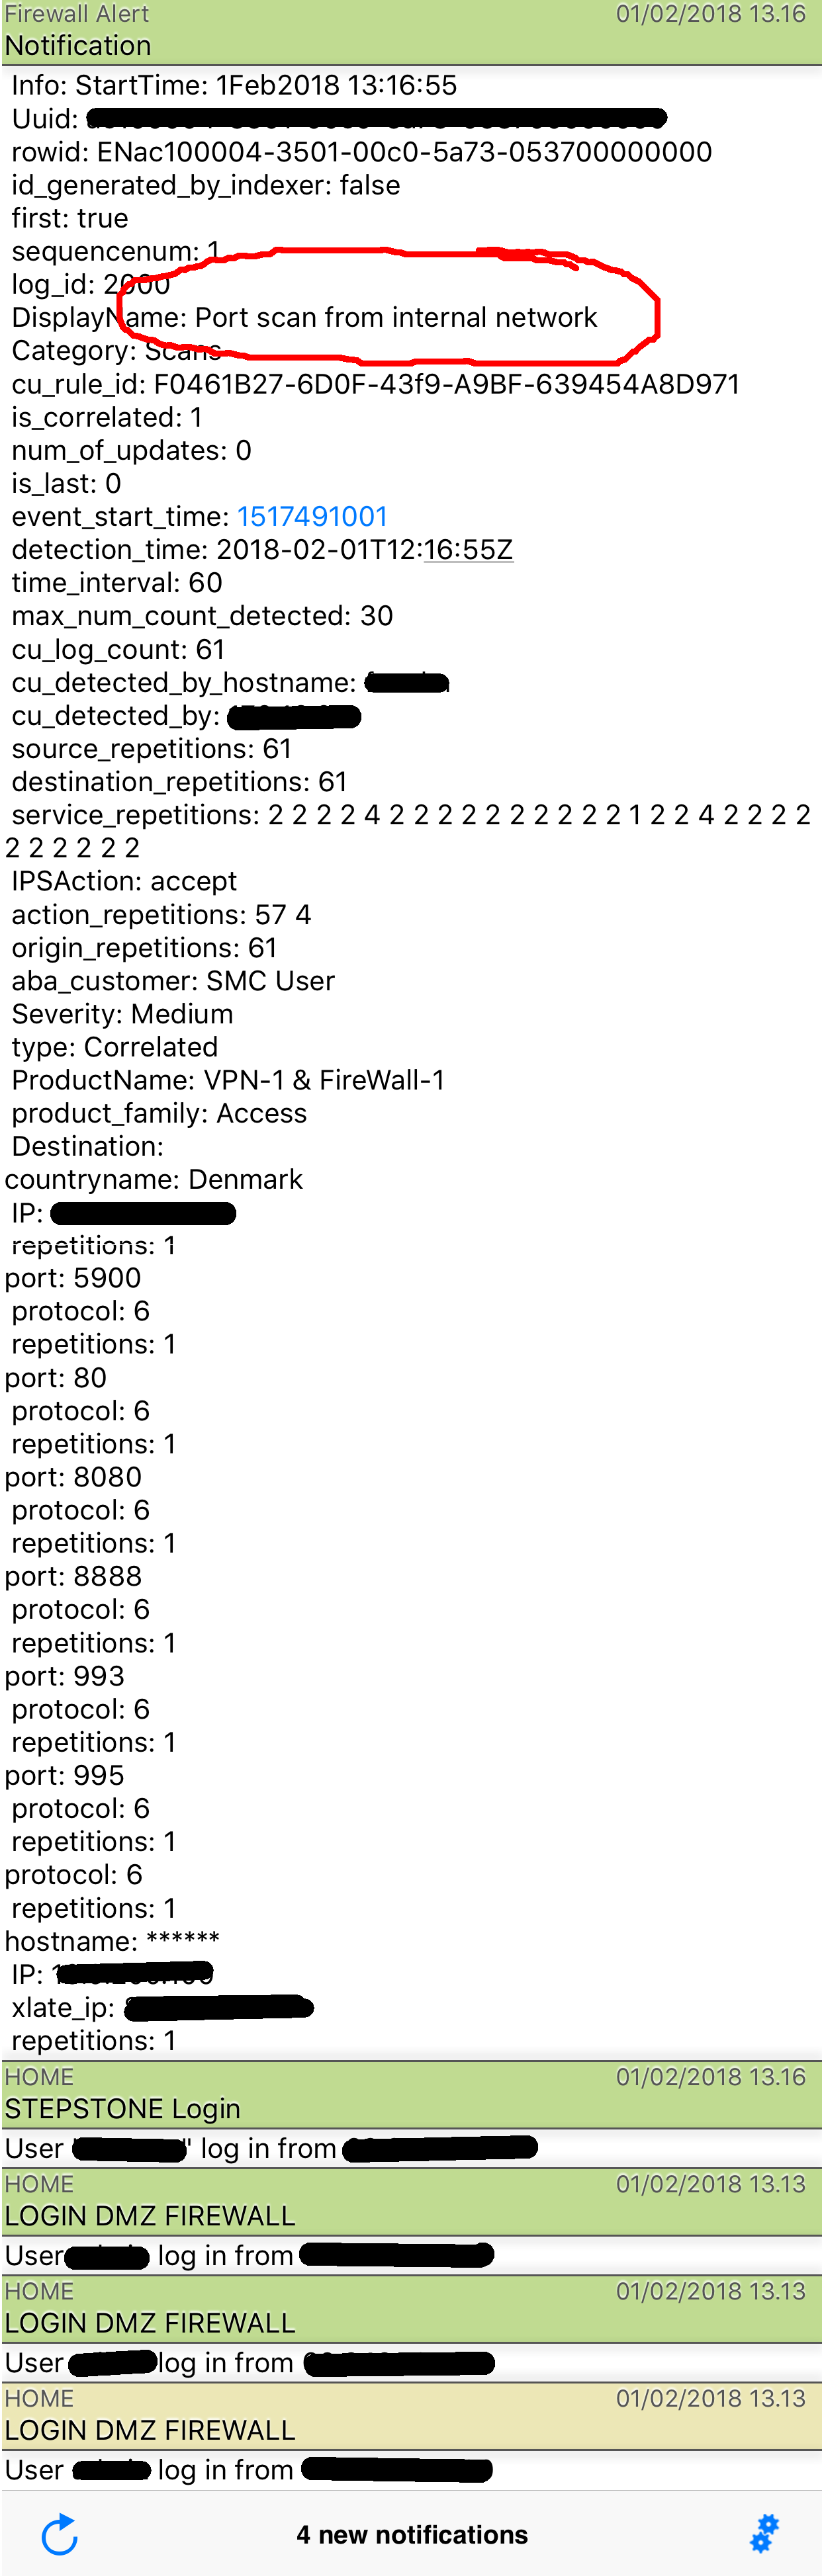 This is a prowl alert showing the details of a portscanning made from within the LAN